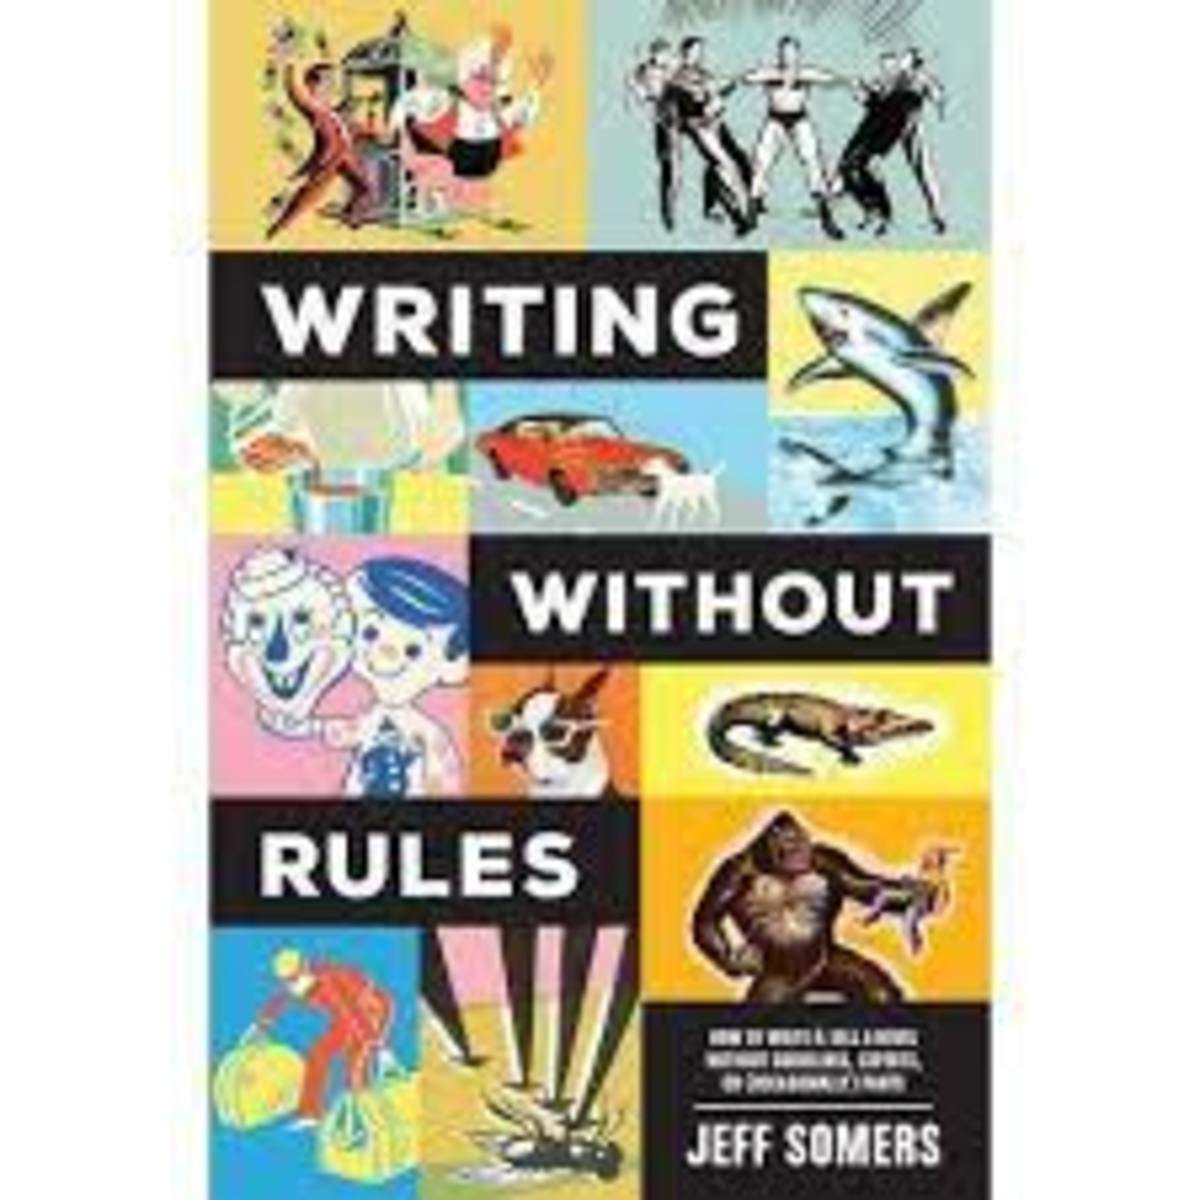 Writing Without Rules | Jeff Somers